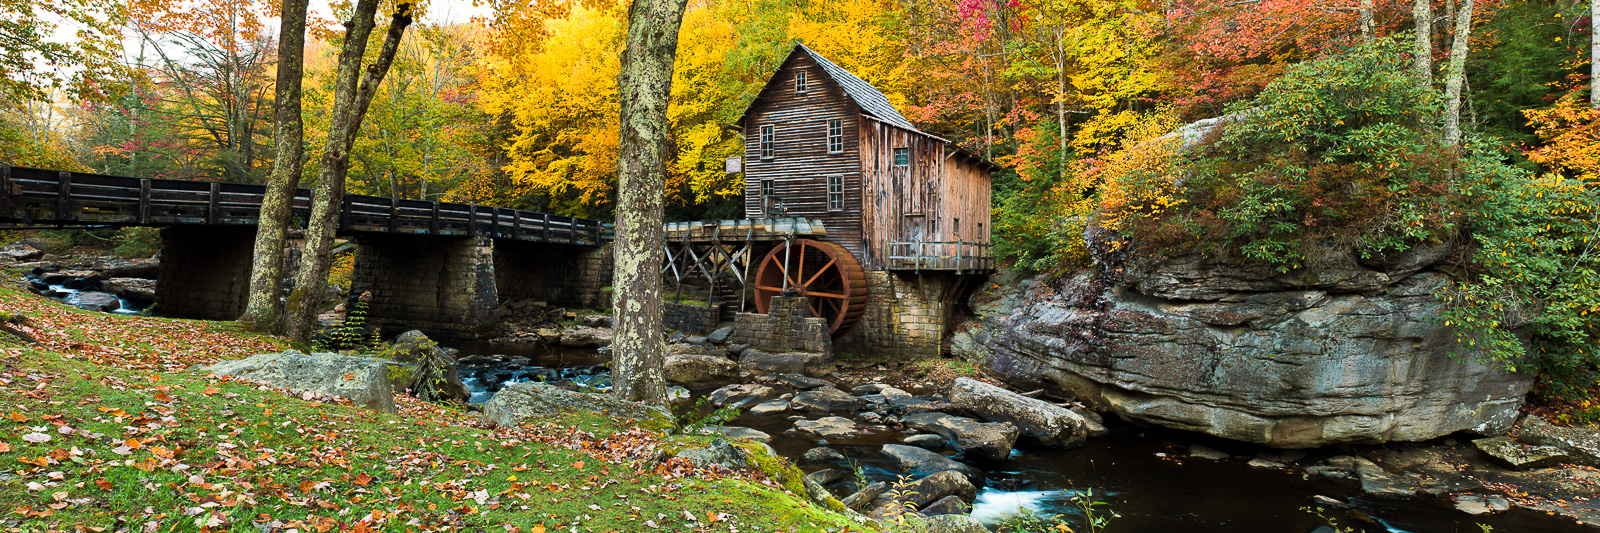 Fall Mill Resting,Horizontal,Panoramic,West Virginia,landscape,Babcock State Park, West Virginia,foliage,Mill,Glade Creek Grist, photo